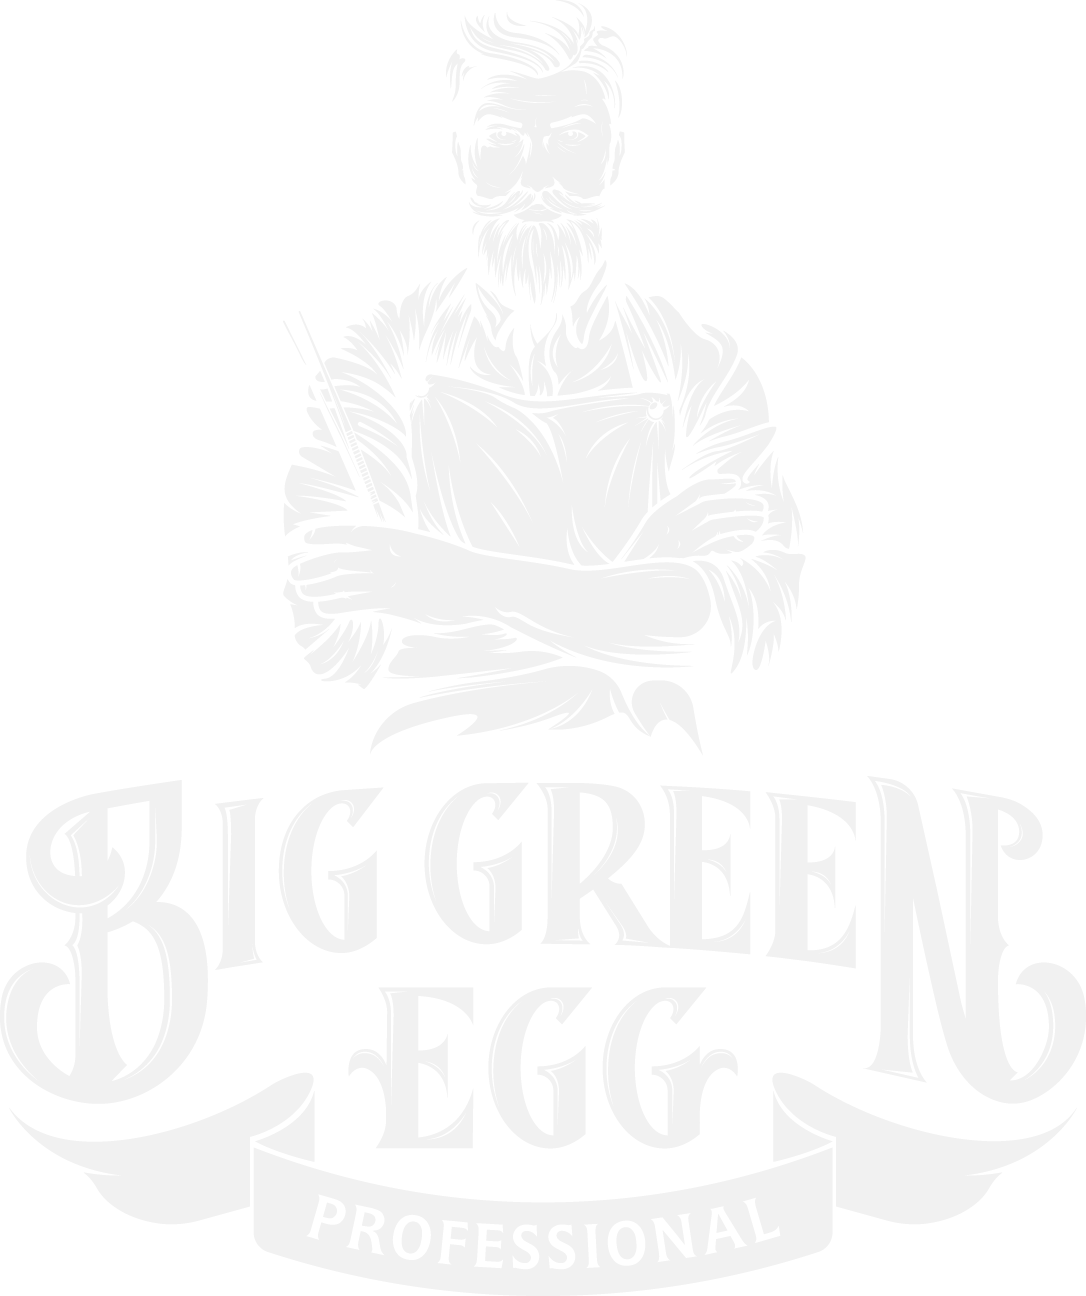 Big Green Egg Professional